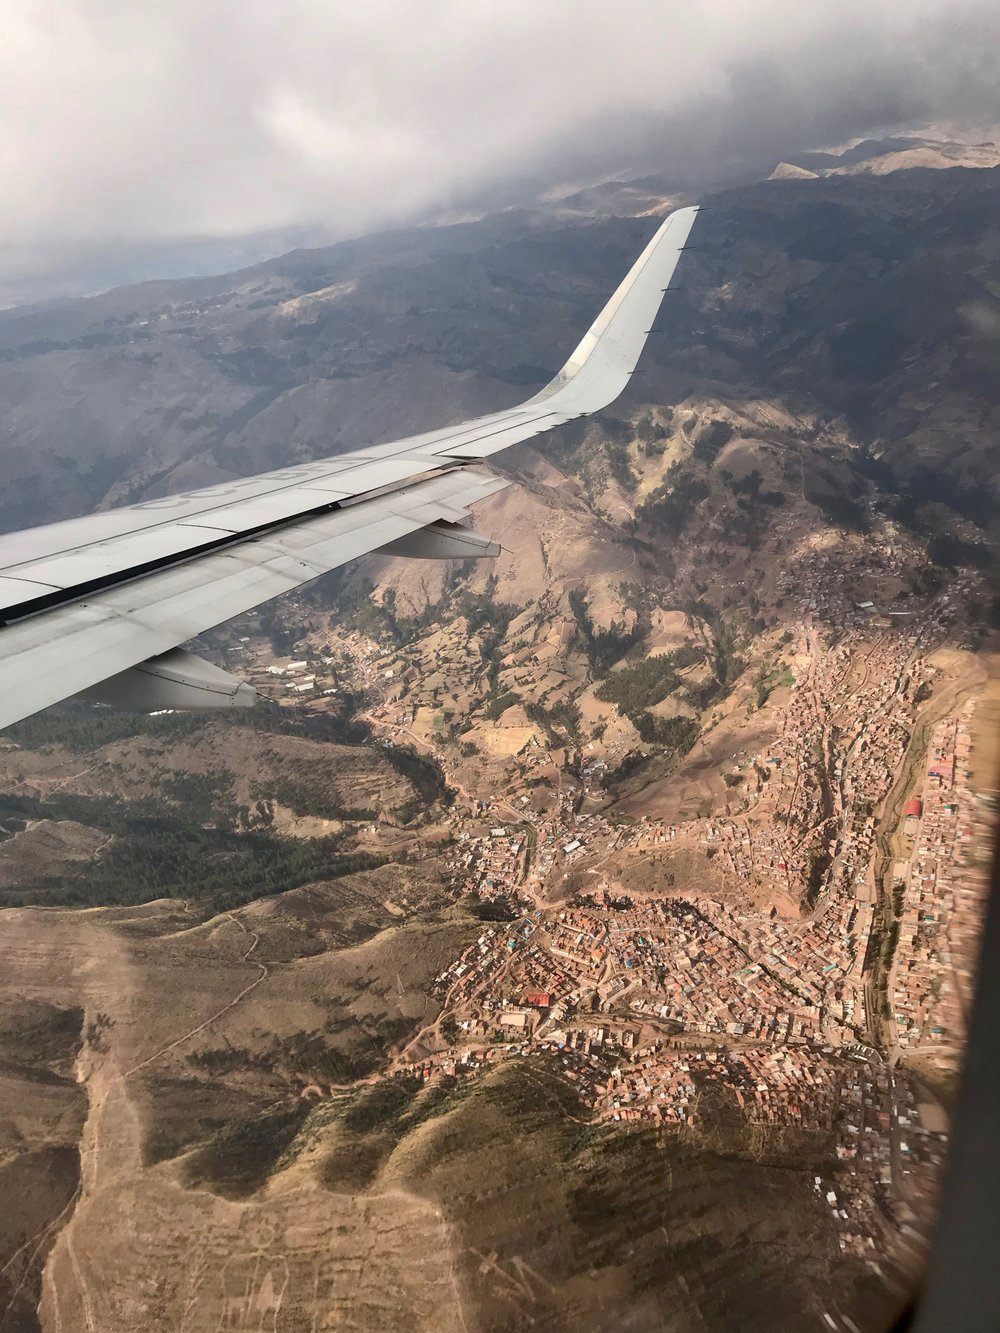 City of Cusco from the plane